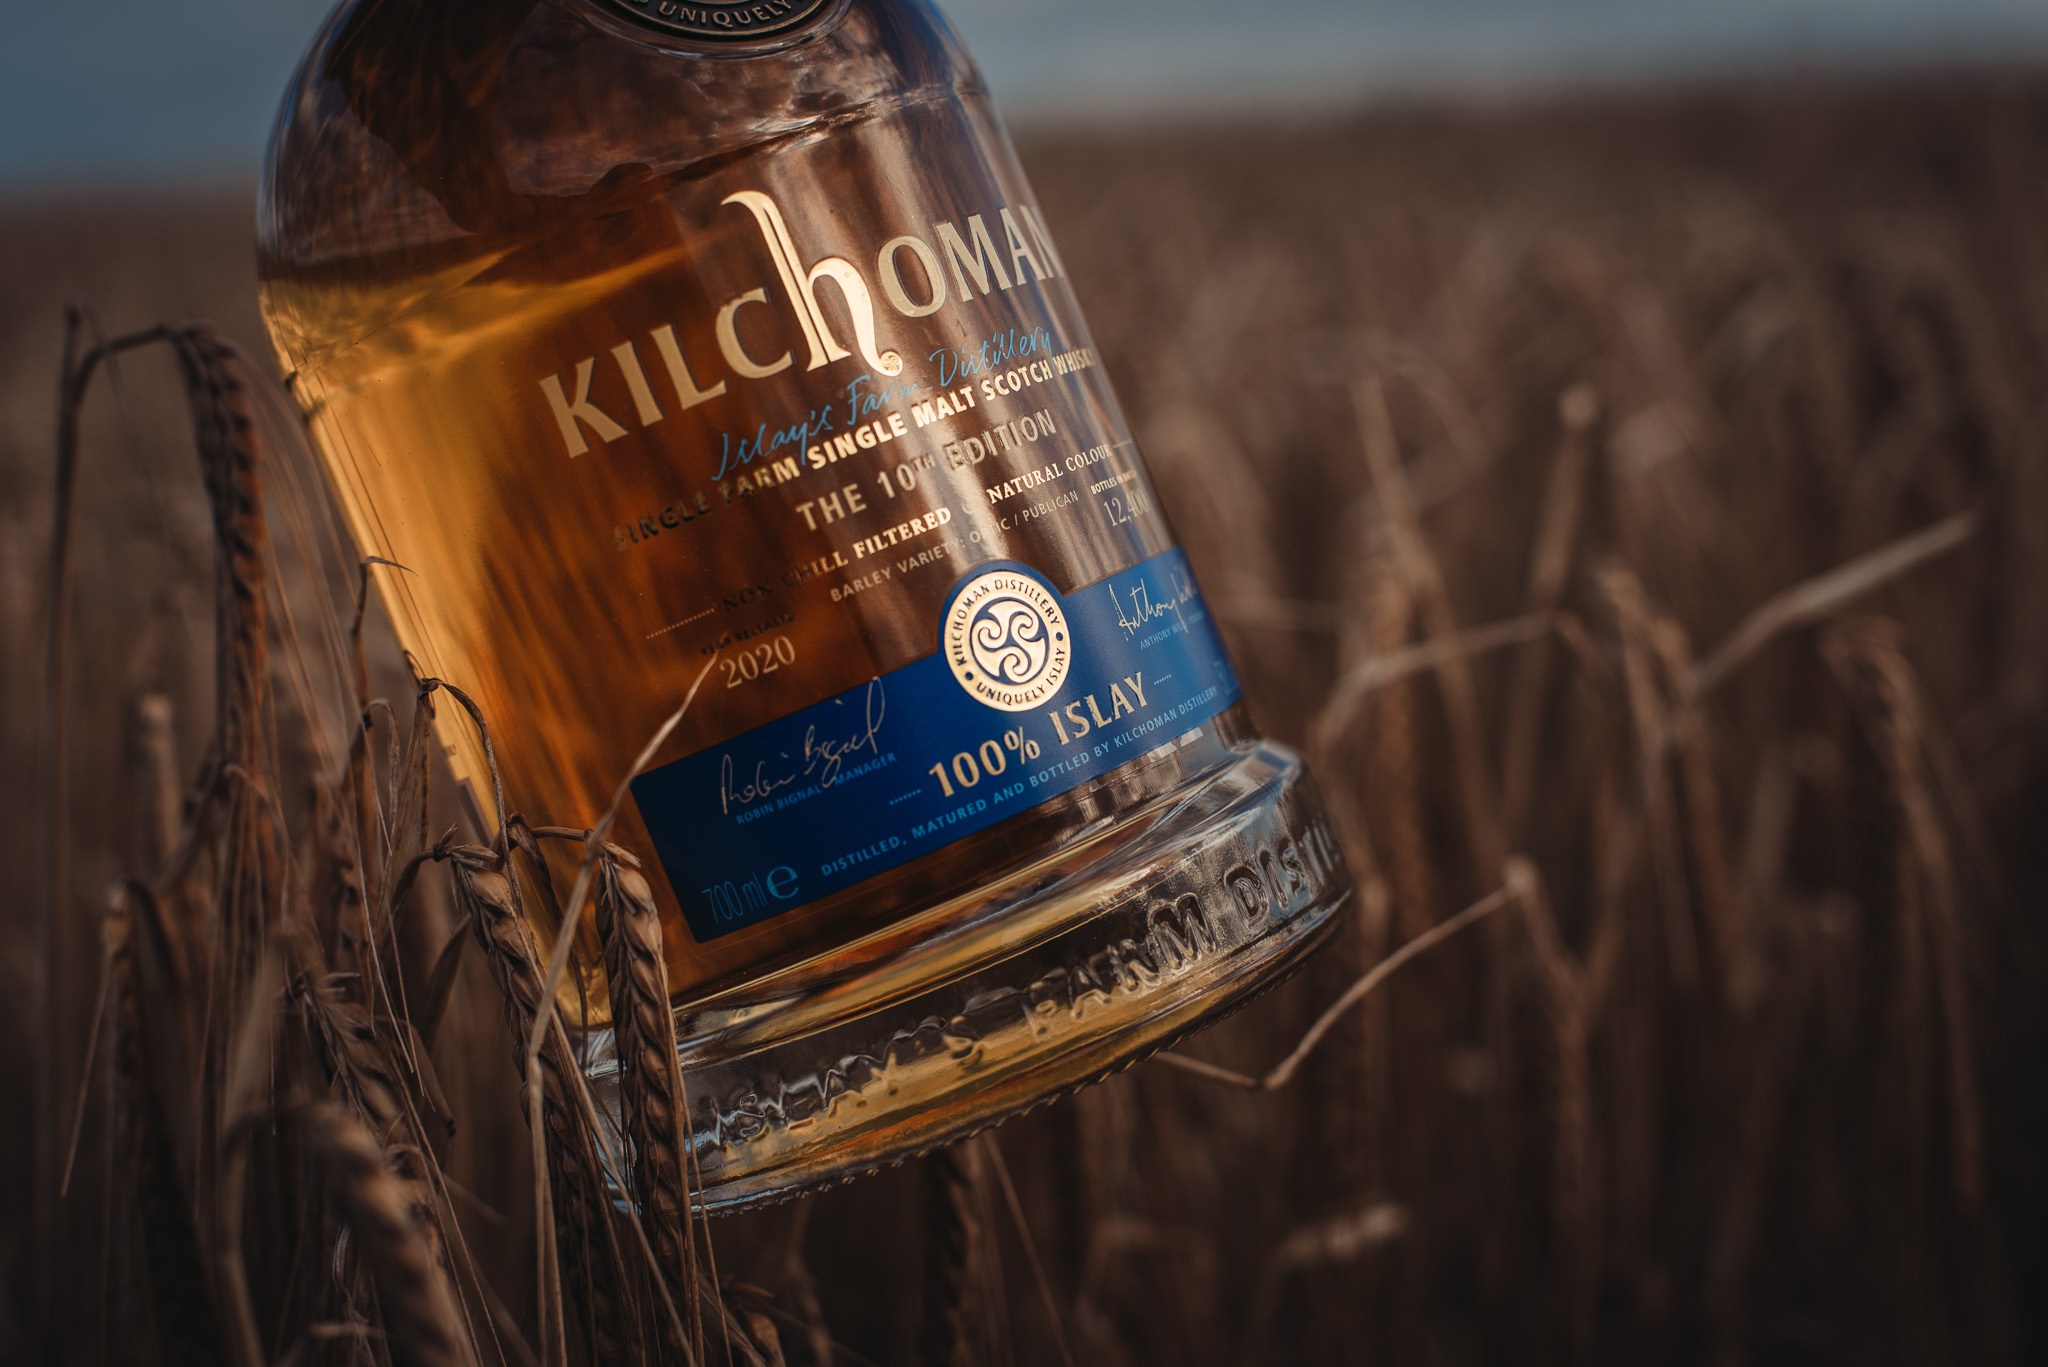 Kilchoman 100% Islay 2020 Edition